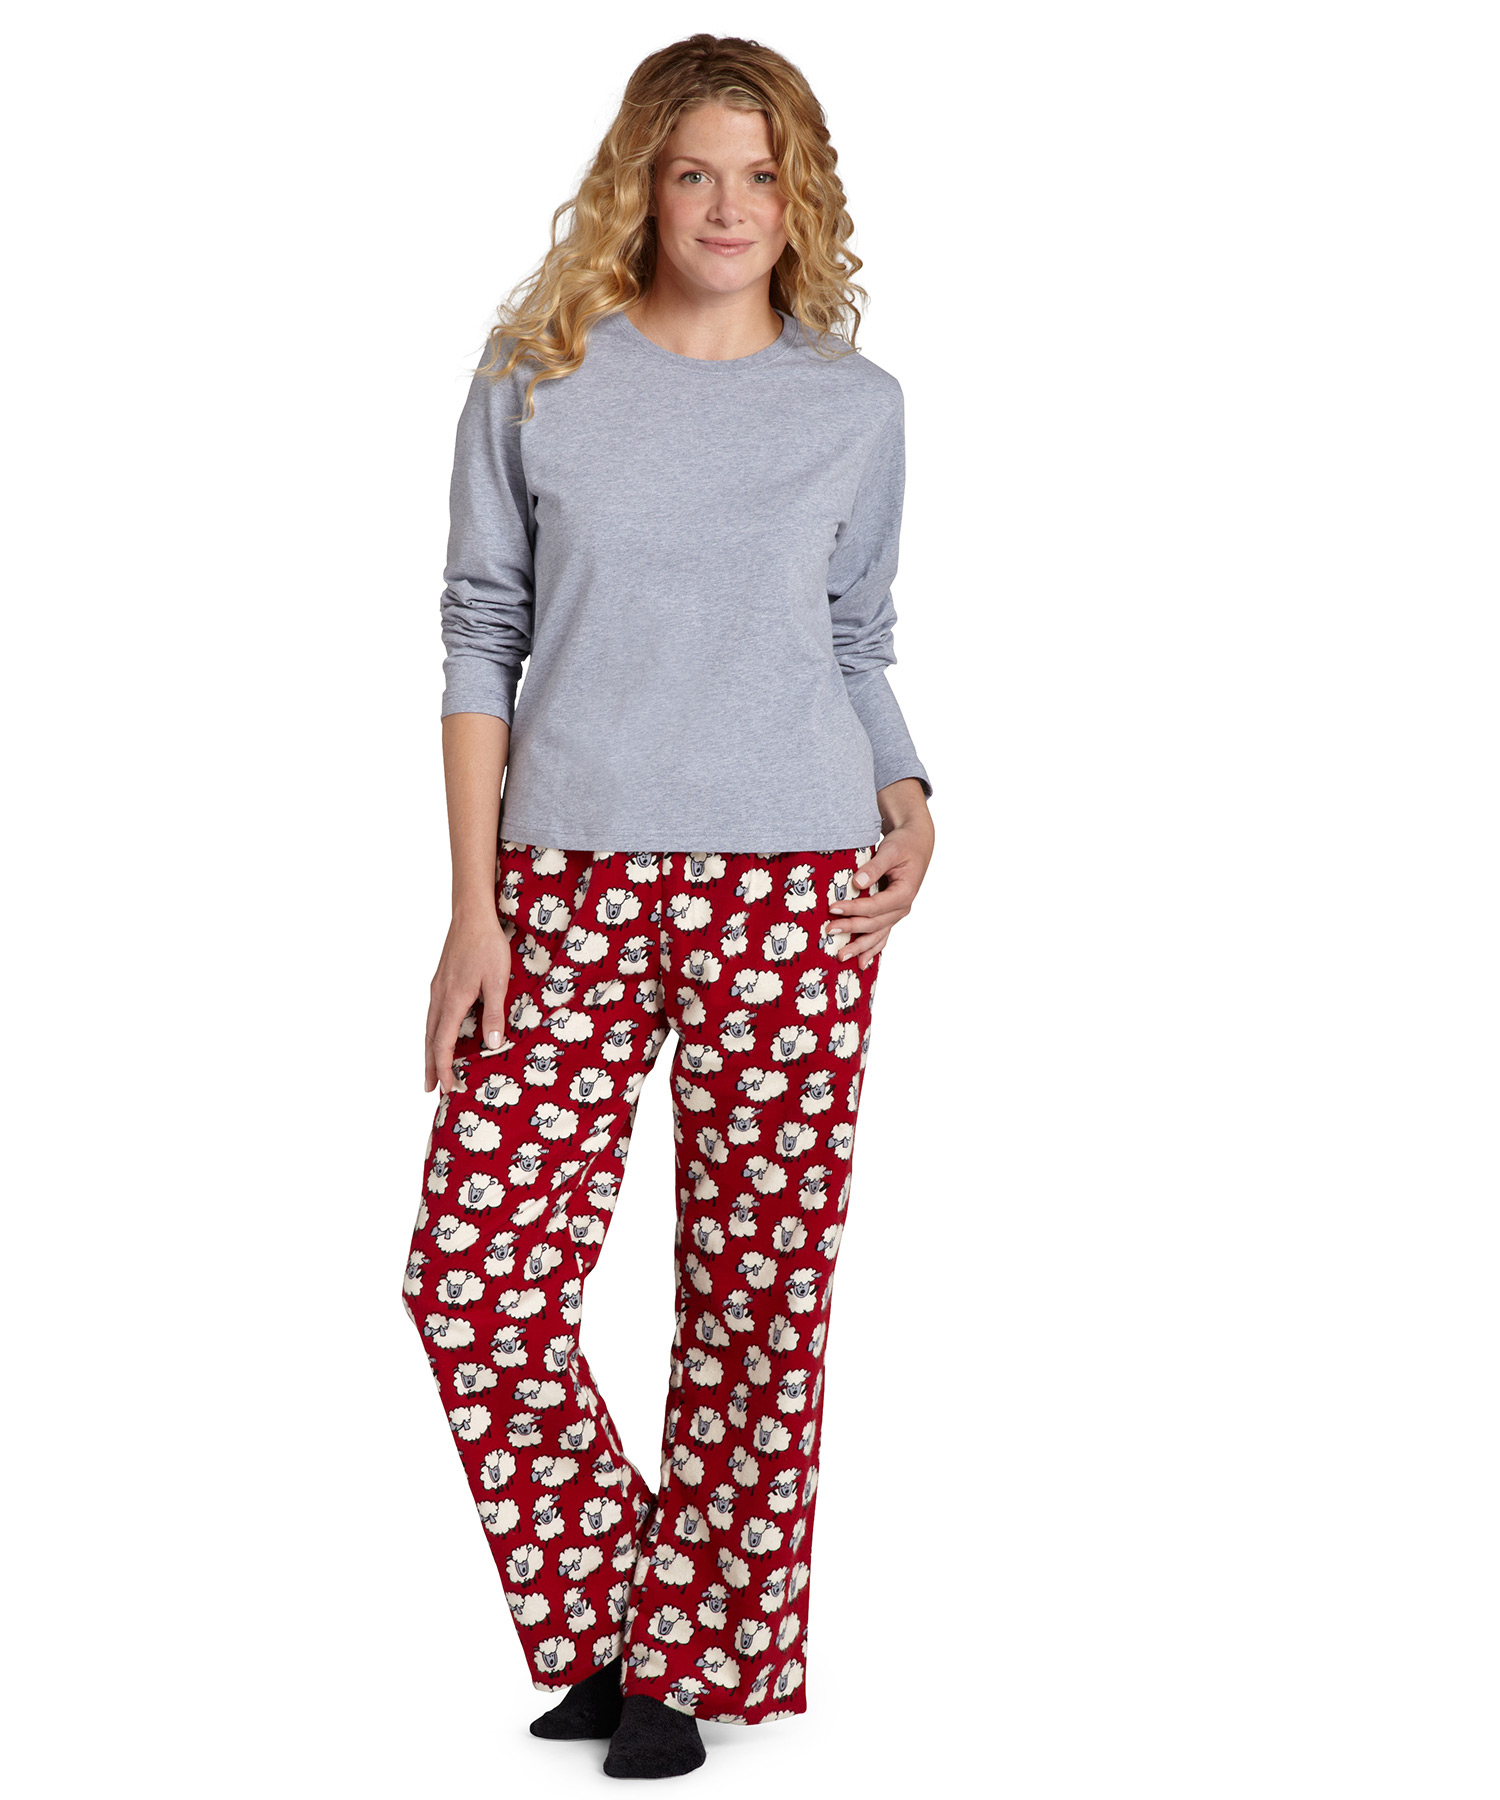 Women's Long Sleeve Pajamas PajamaMania Women's Flannel Long Sleeve Pajamas. $ PajamaMania Women's Fleece Long Sleeve Pajama Sleepyheads Women's Poplin Cotton Long Sleeve Button Up Top and Pants Set. $ Sleepyheads Women's .